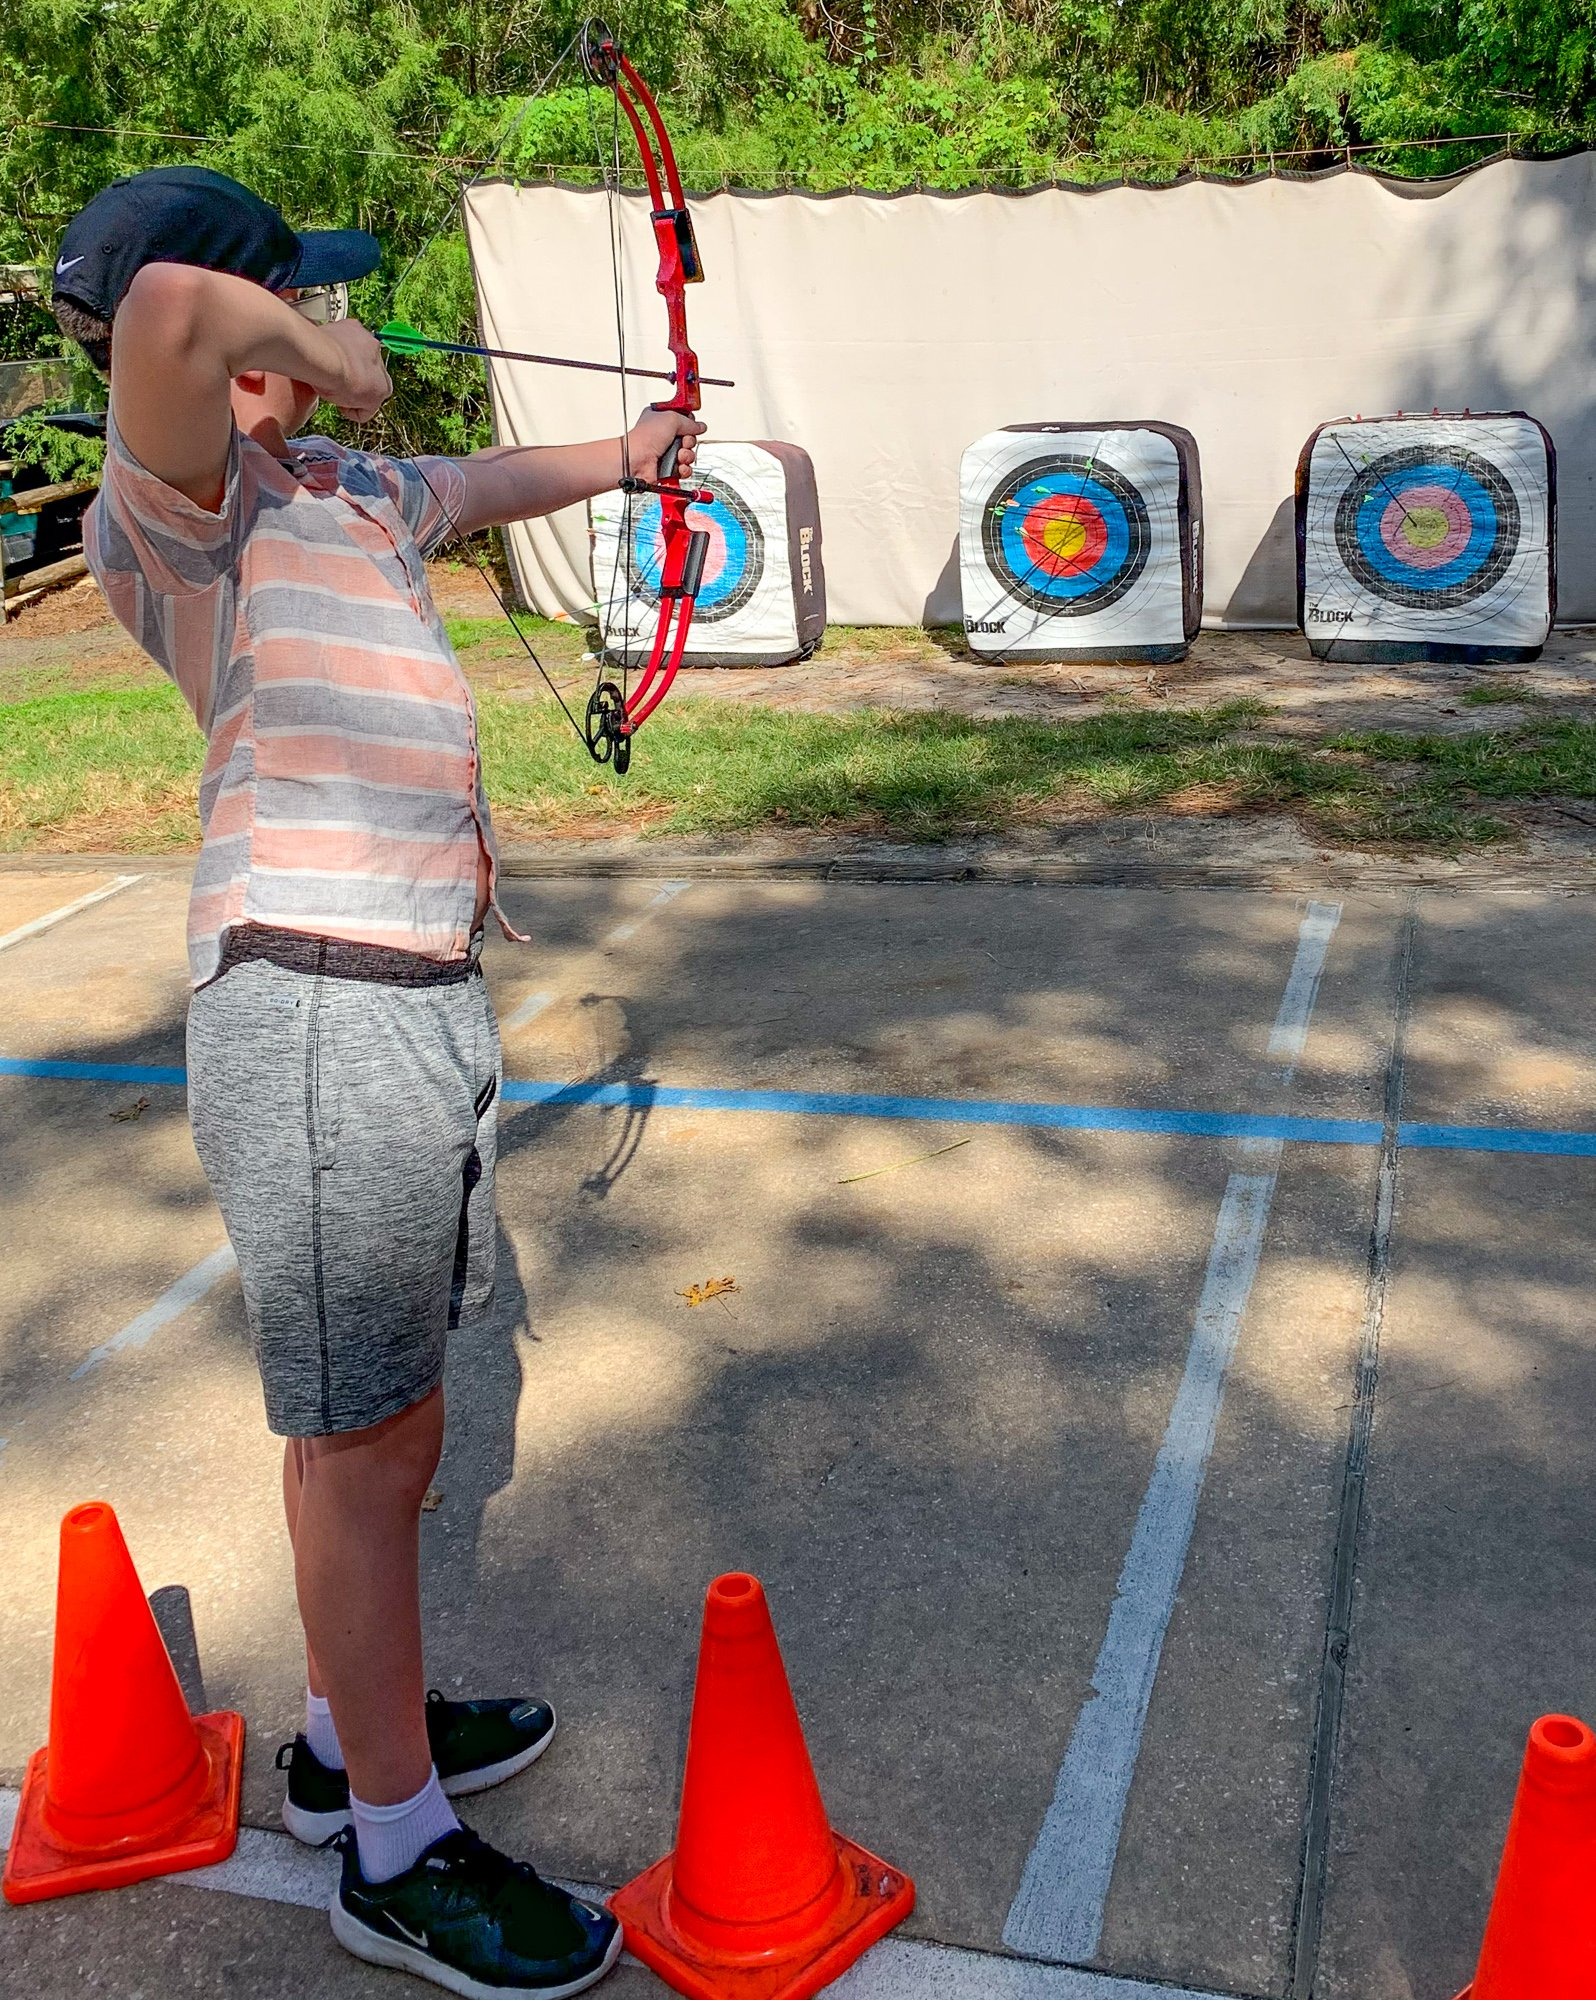 Archery lesson with tweens and teens at Disney's Fort Wilderness Lodge